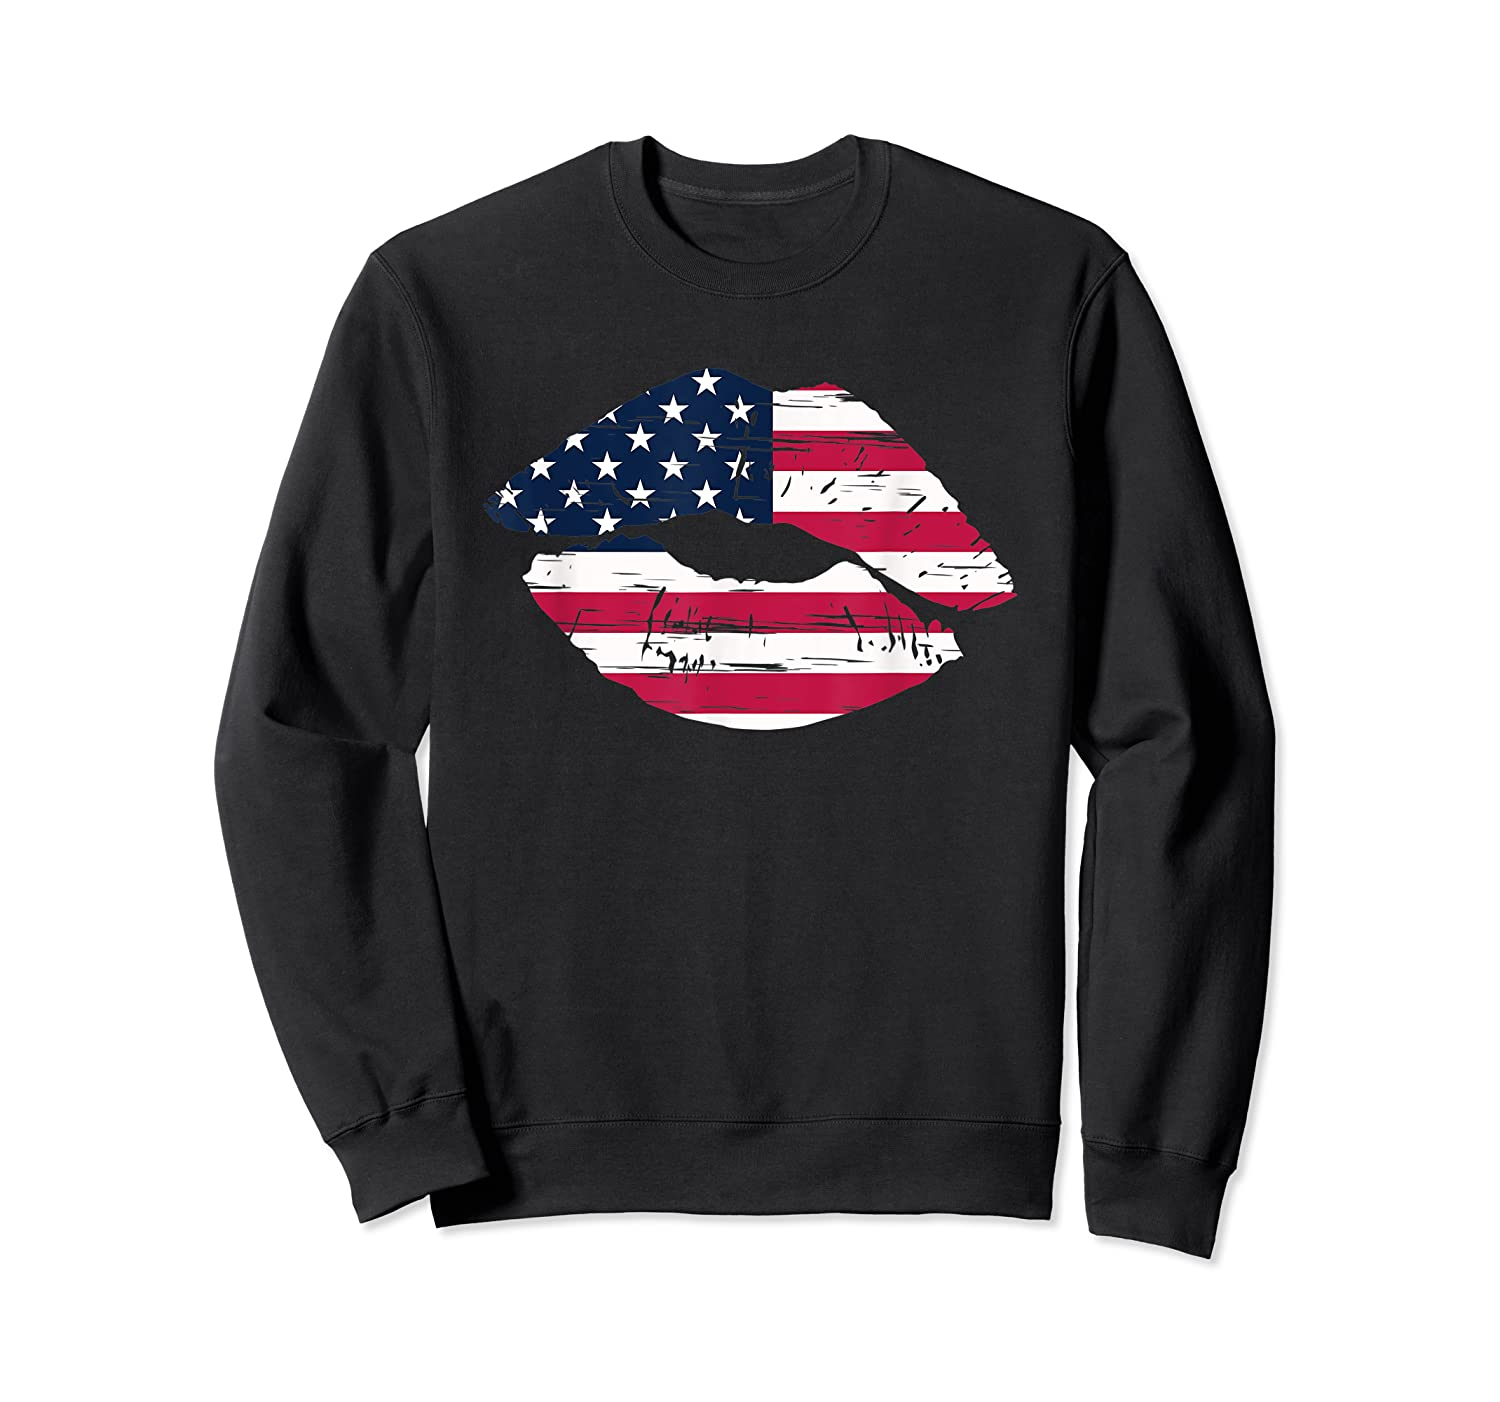 Cool Lips With American Flag Girl 4th Of July Gift Shirts Crewneck Sweater